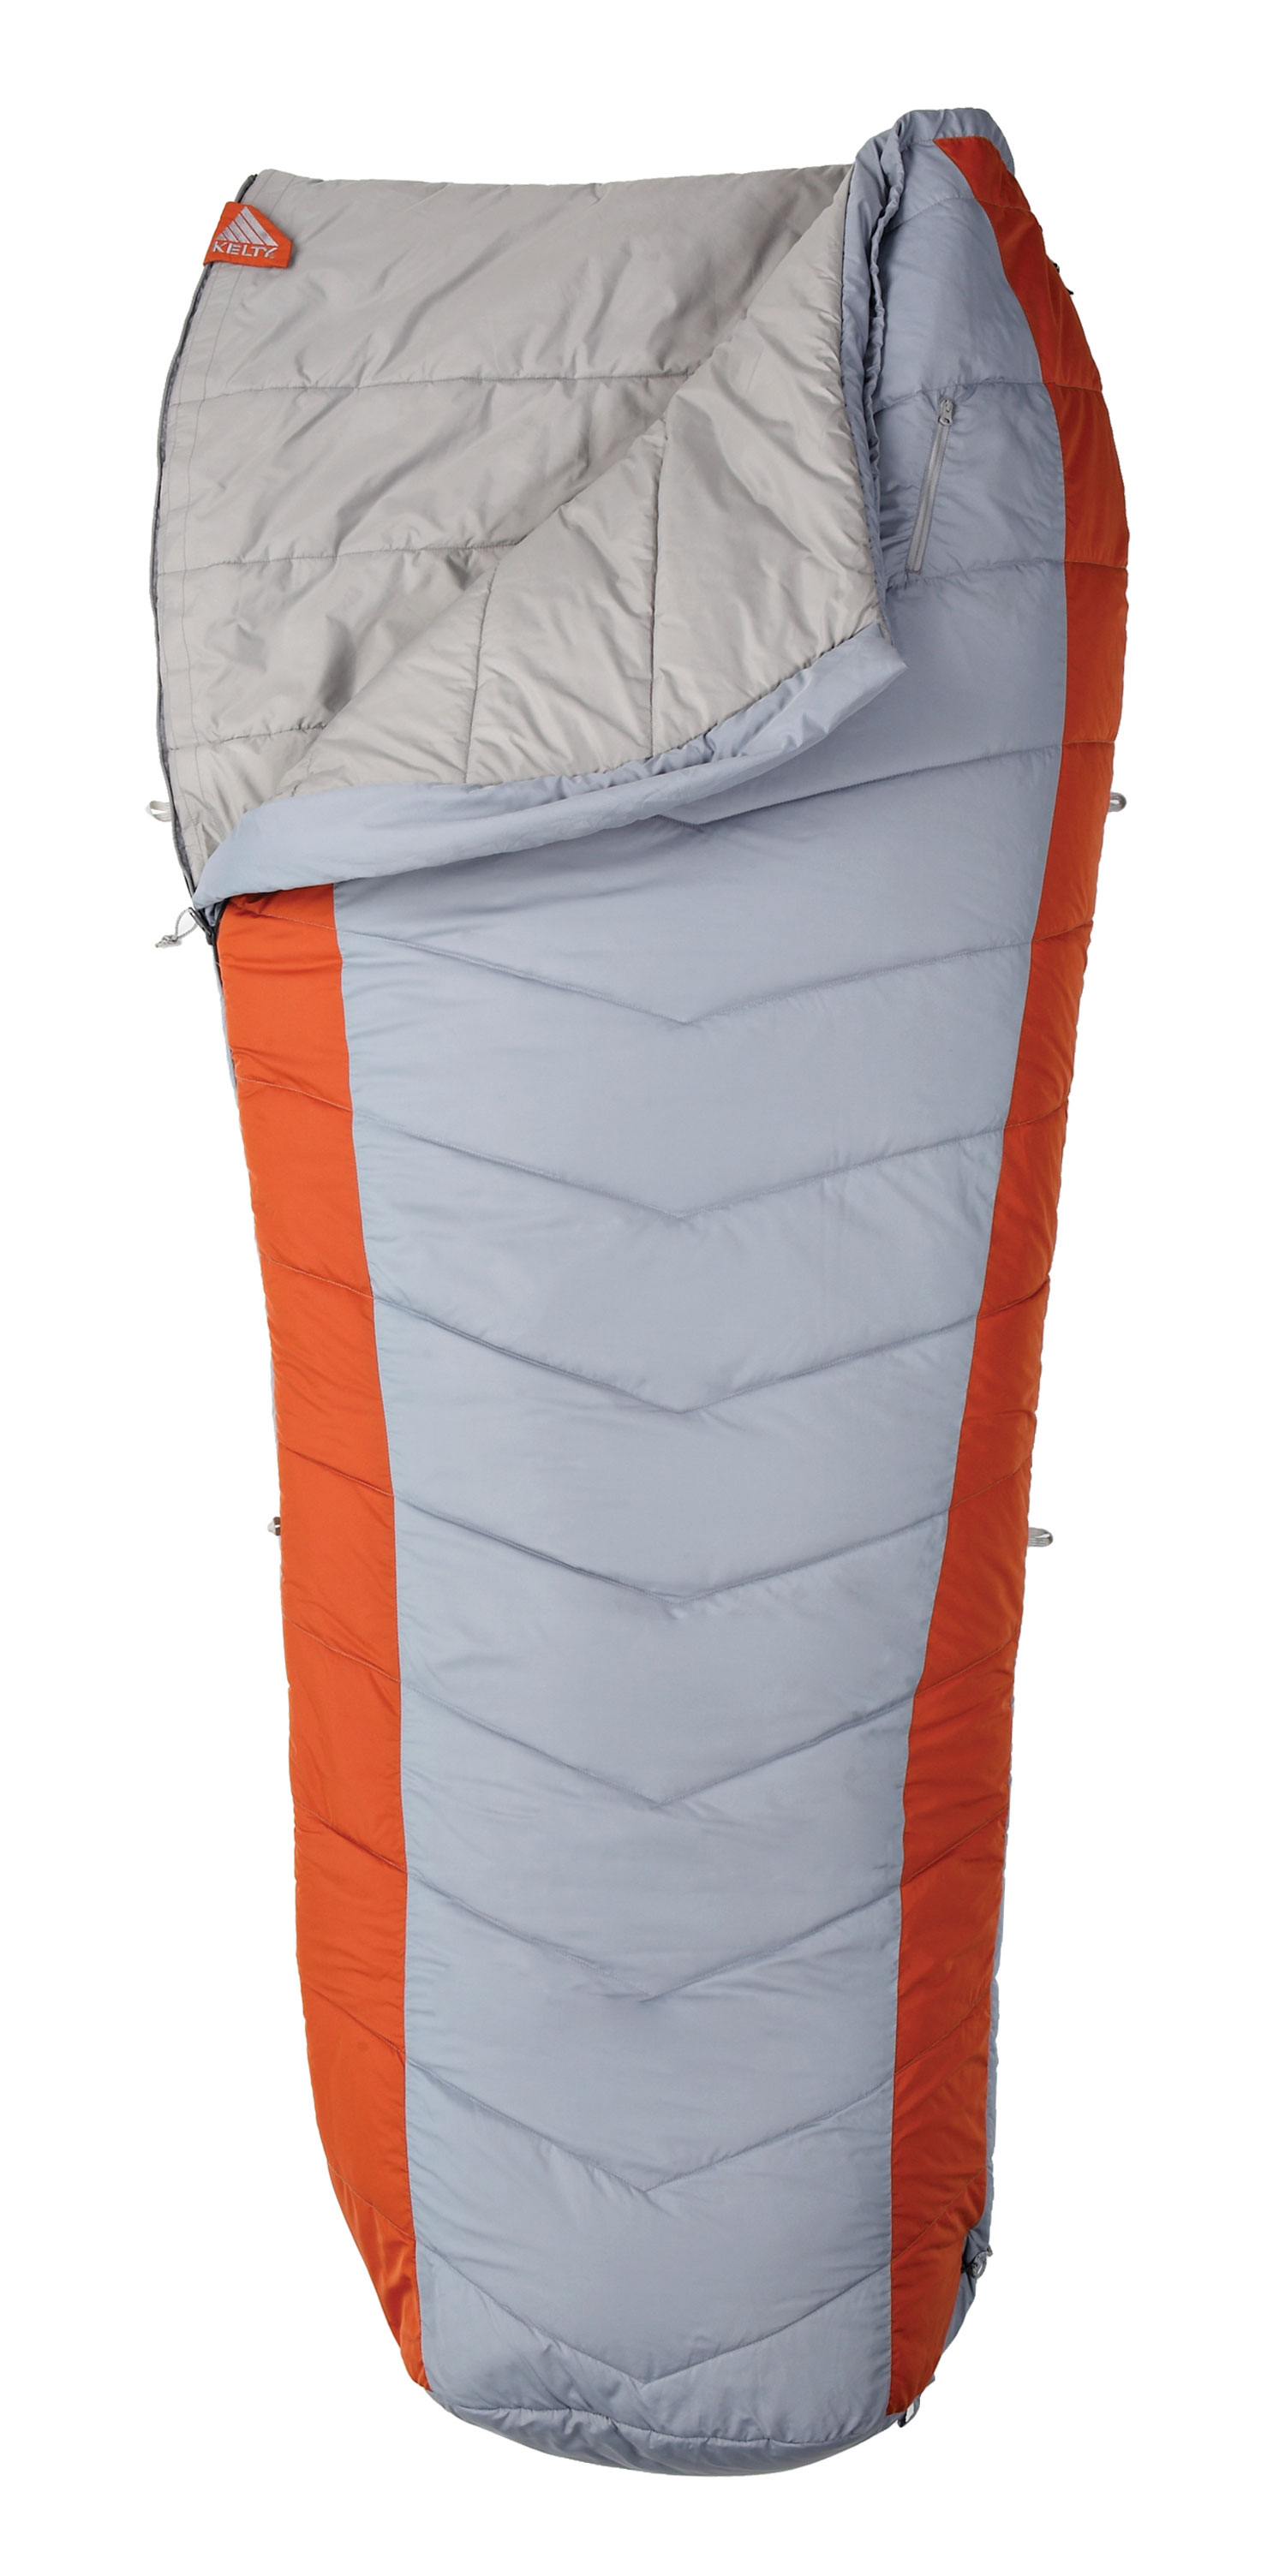 "Camp and Hike For the warm weather camper who wants extra elbow room in a synthetic bag, the semi-rectangular Coromell CP 25degree features insulation throughout, unzips to a blanket, resulting in a no-hassle, comfortable bag that guarantees a good night's sleep.Key Features of the Kelty Coromell Cp 25 Degree Regular Sleeping Bag: Two-layer offset-quilt construction Chevron stitching Two-way locking blanket zipper Zipper draft tube with anti-snag design Bag can be unzipped and opened flat for use as a blanket Convenient chest pocket Internal liner loops Sleeping pad security loops Hang loops for storage Micro FatMan and Ribbon drawcords Micro captured cordlock Ground-level side seams prevent heat from escaping Differential cut to maximize loft and warmth Ultralight compression stuff sack included Storage sack included Fits to 6' / 183 cm Length: 75"" / 191 cm Shoulder girth: 66"" / 168 cm Fill weight: 39 oz. / 1.1 kg Total weight: 3 lb. 15 oz. / 1.8 kg Stuffed diameter: 11"" / 28 cm Stuffed length: 16"" / 41 cm Insulation: Kelty CloudLoft Pro Shell material: 50D polyester diamond cross-dye ripstop Liner material: 50D polyester microfiber pongee - $68.56"